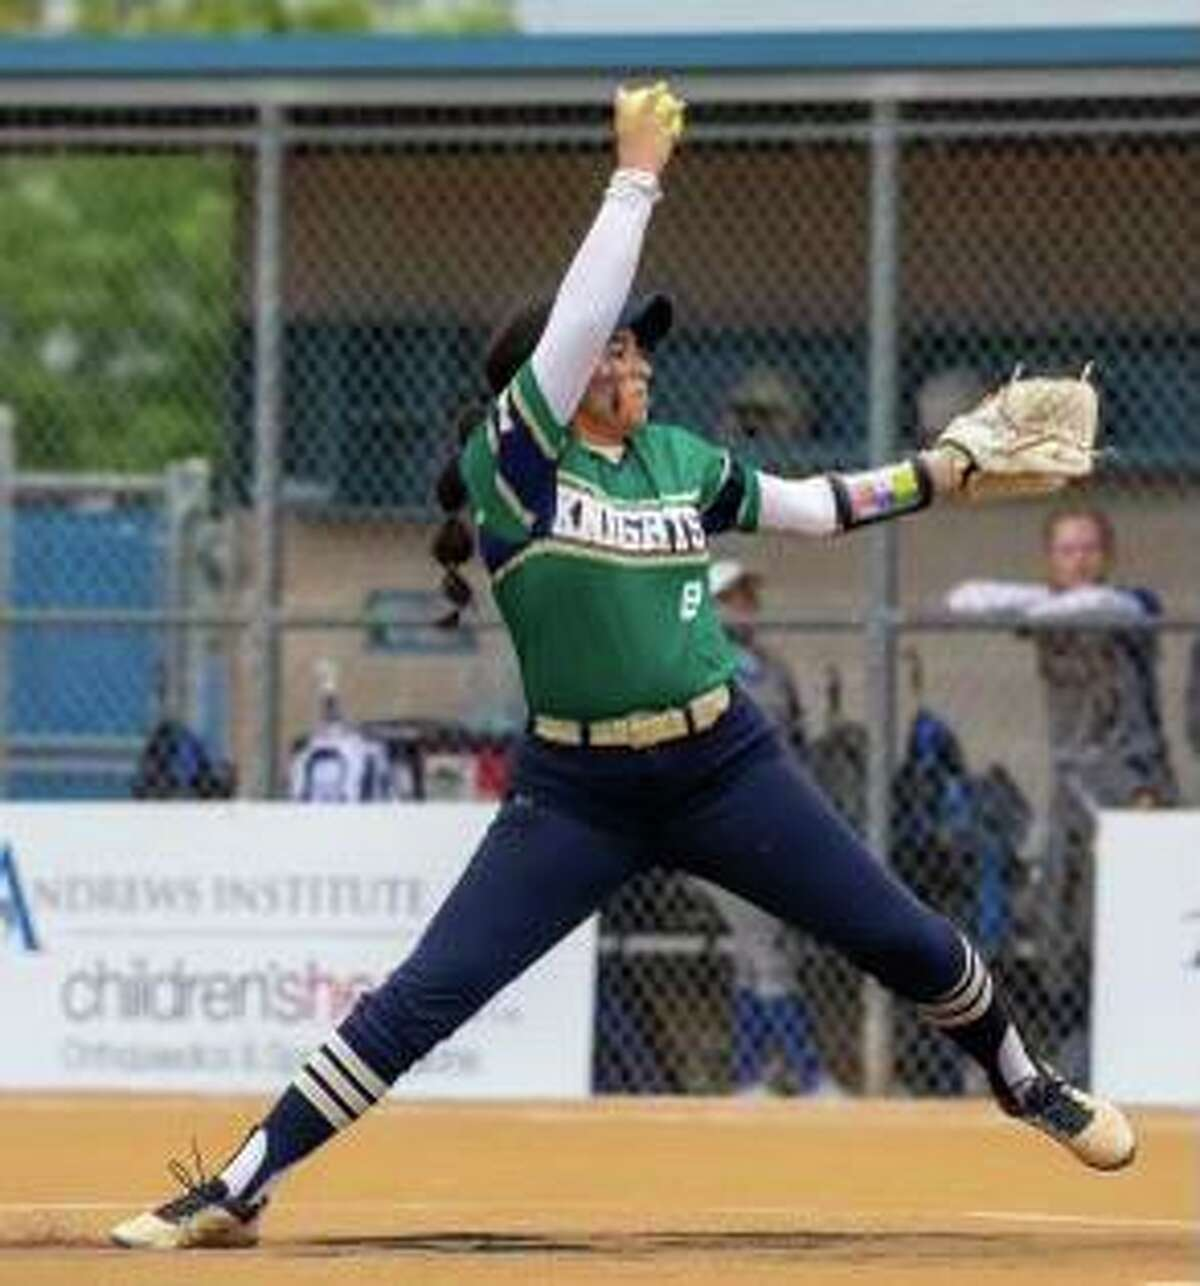 Gia Reynosa allowed one hit for Holy Cross, which defeated Baytown Christian 10-0 to win the TAPPS Division III state championship on May 13, 2021.